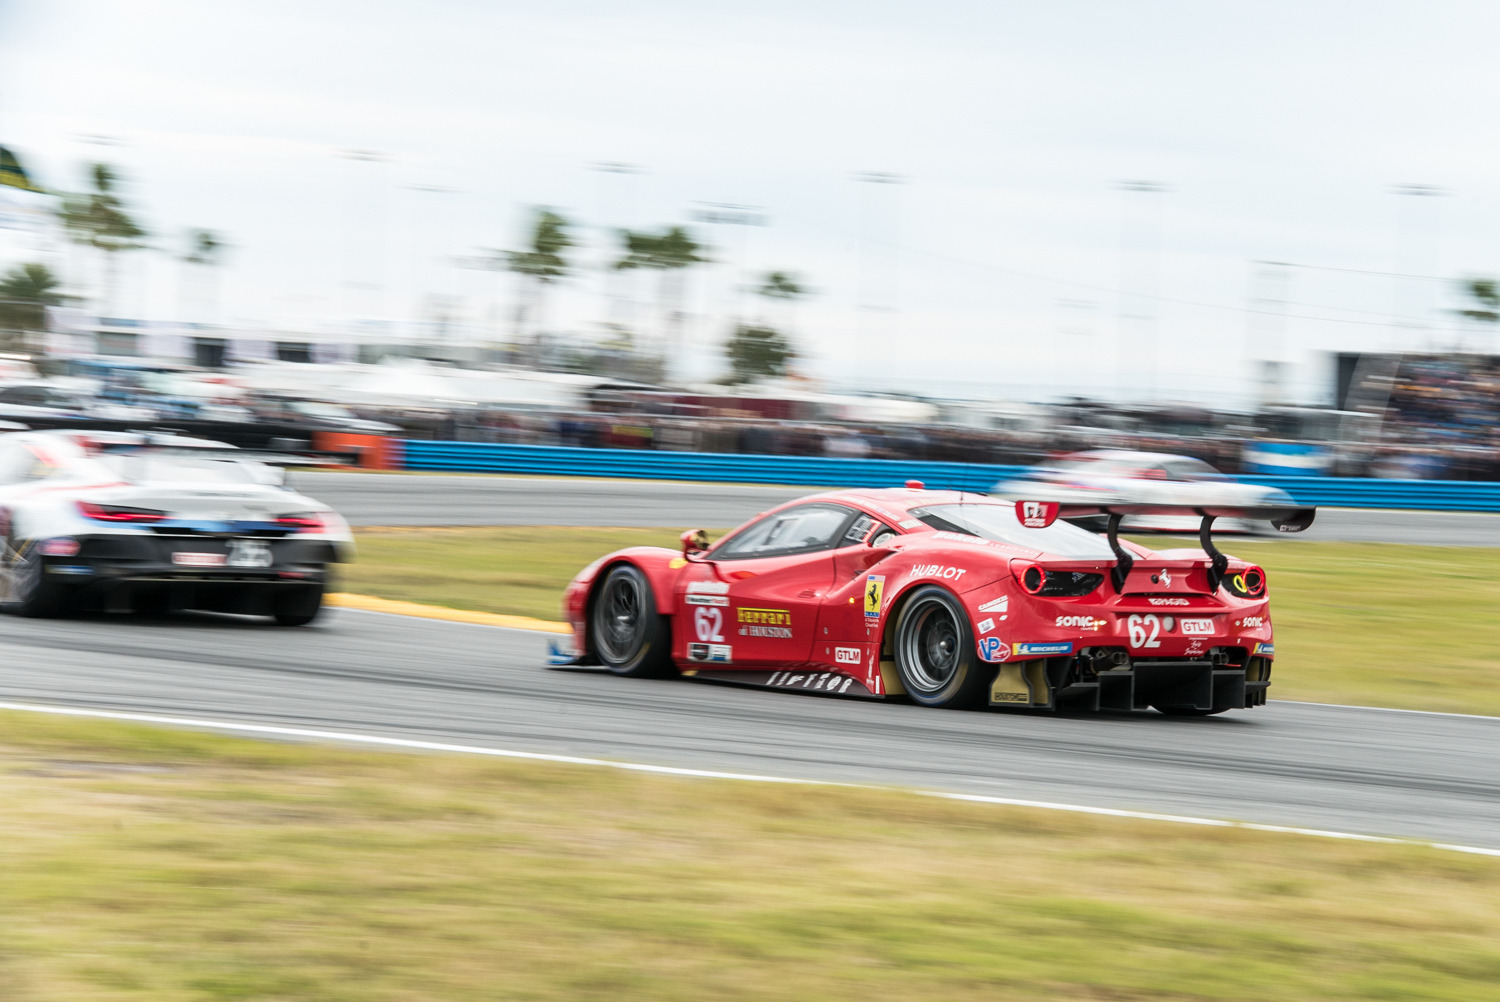 This red Ferrari 488 GTE, pictured in the opening laps, was in the scrum for the lead throughout the entire race and finished second in its class.